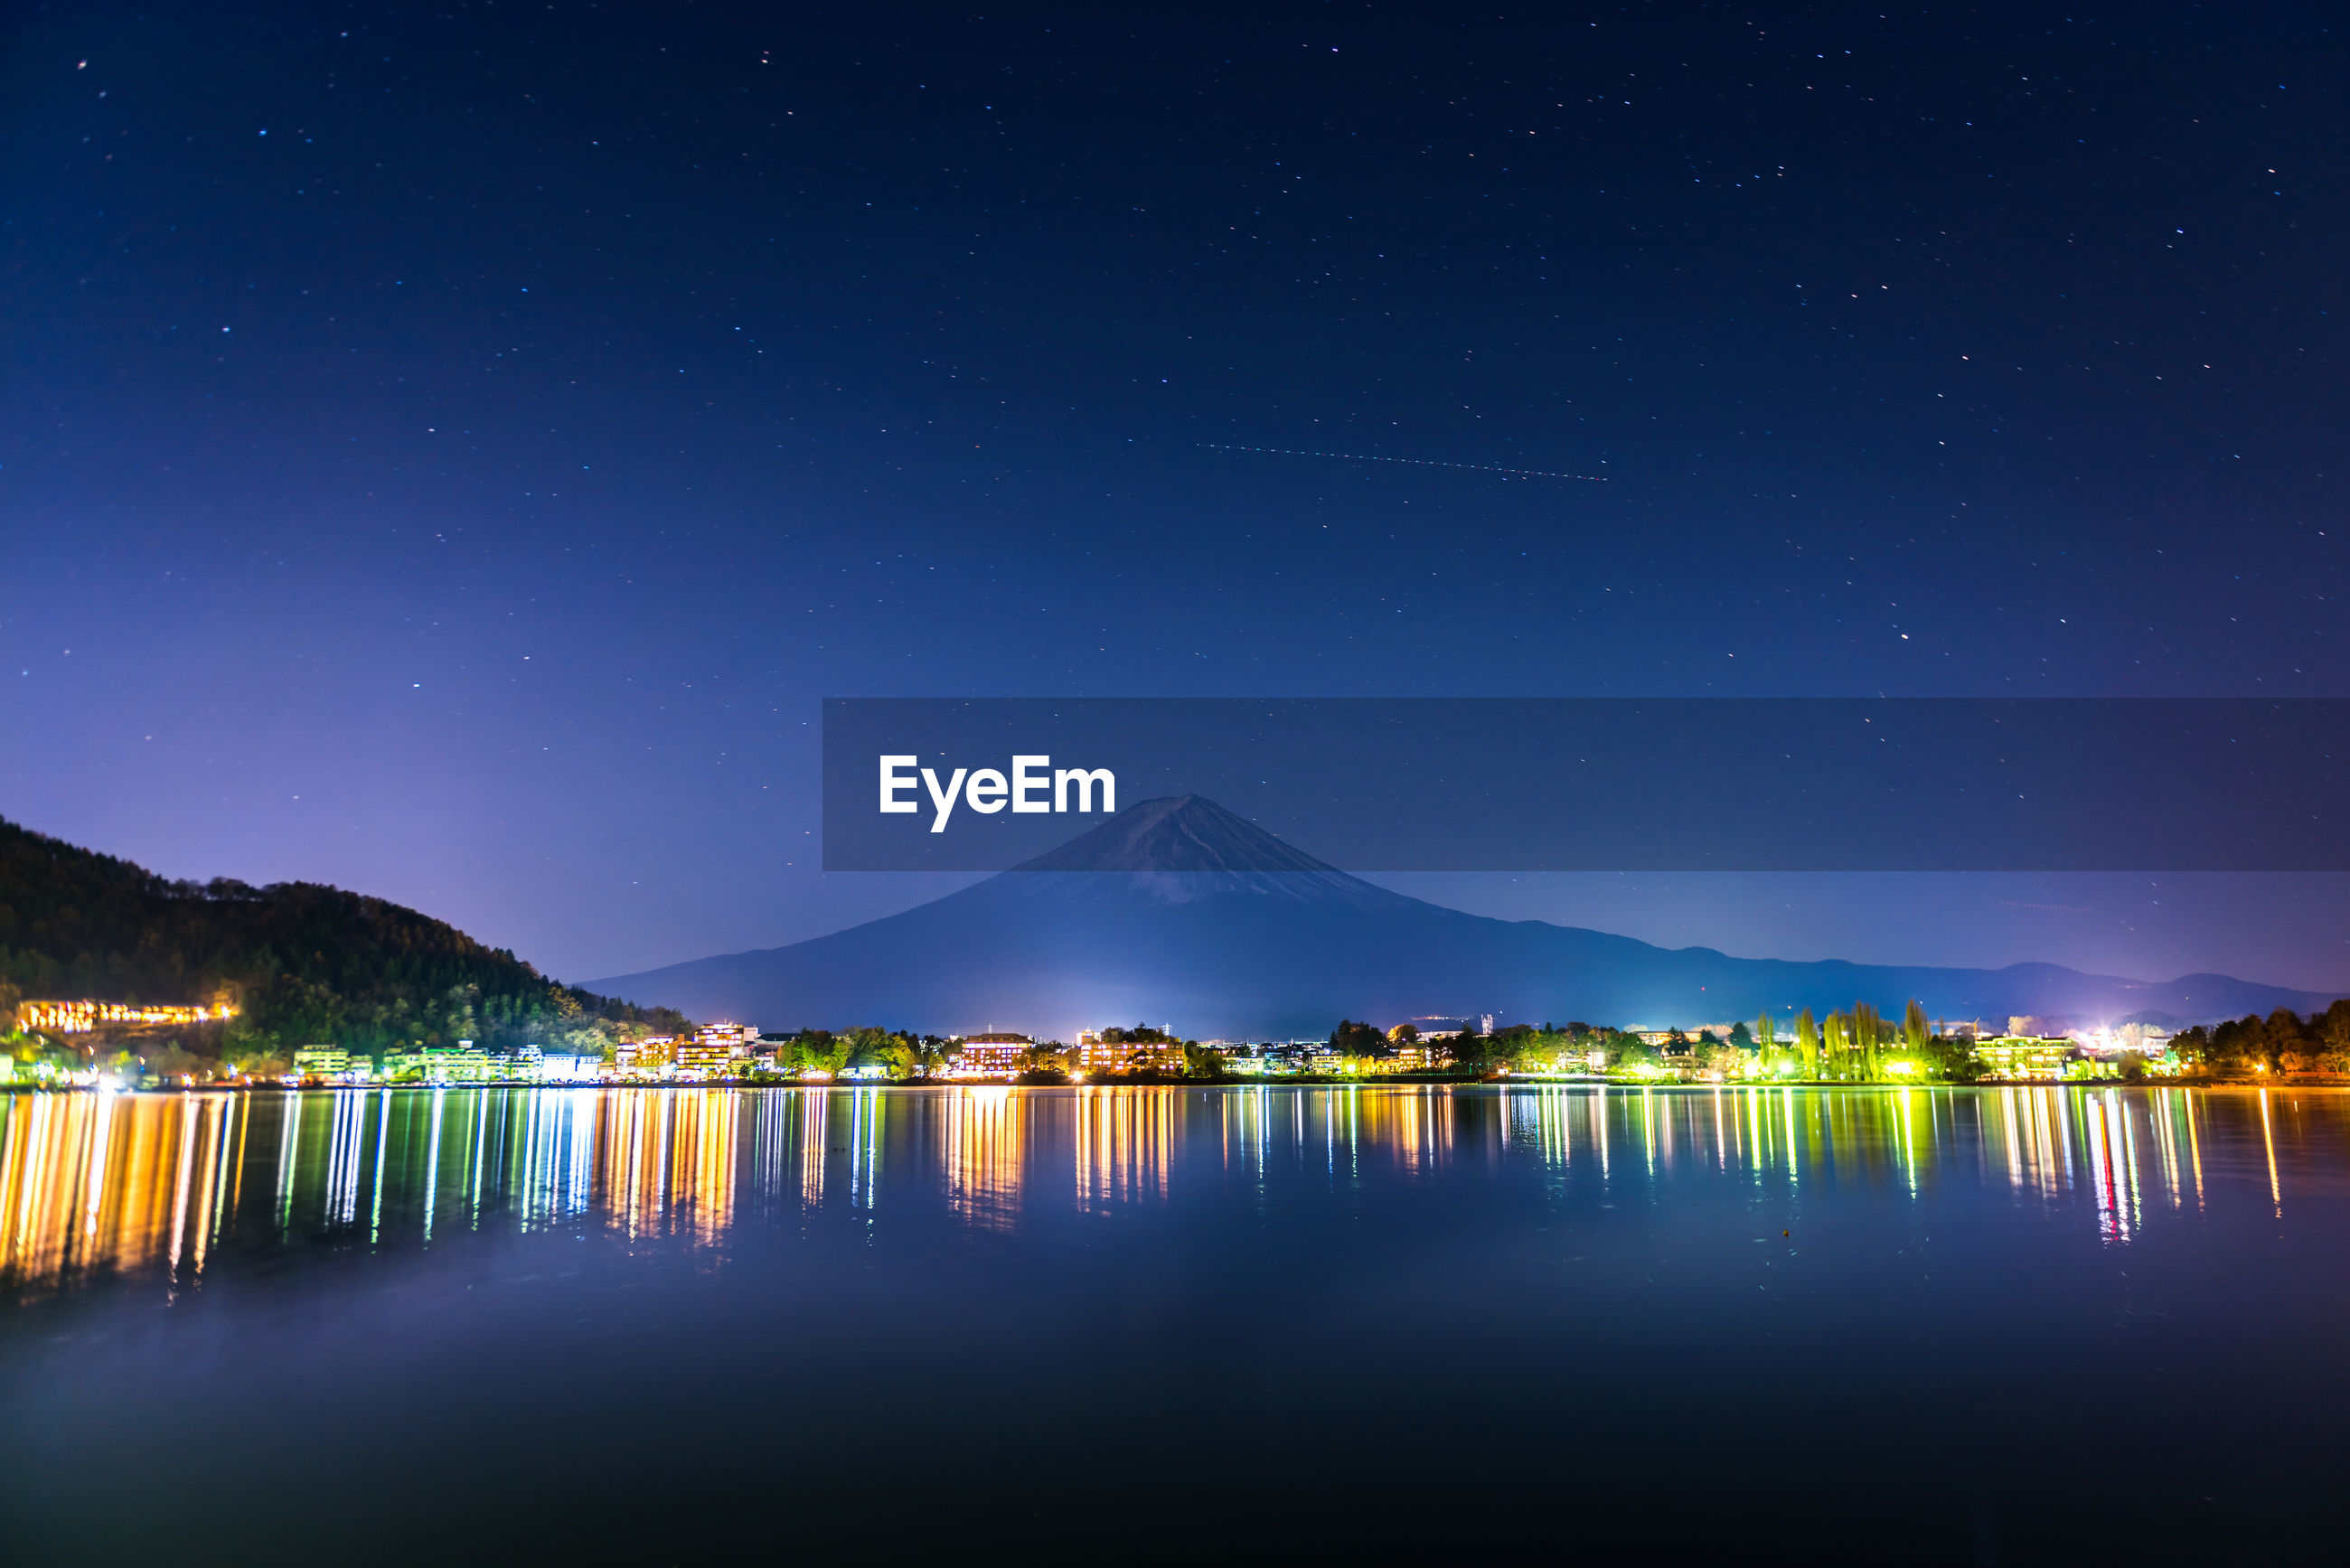 SCENIC VIEW OF LAKE BY ILLUMINATED MOUNTAINS AGAINST SKY AT NIGHT